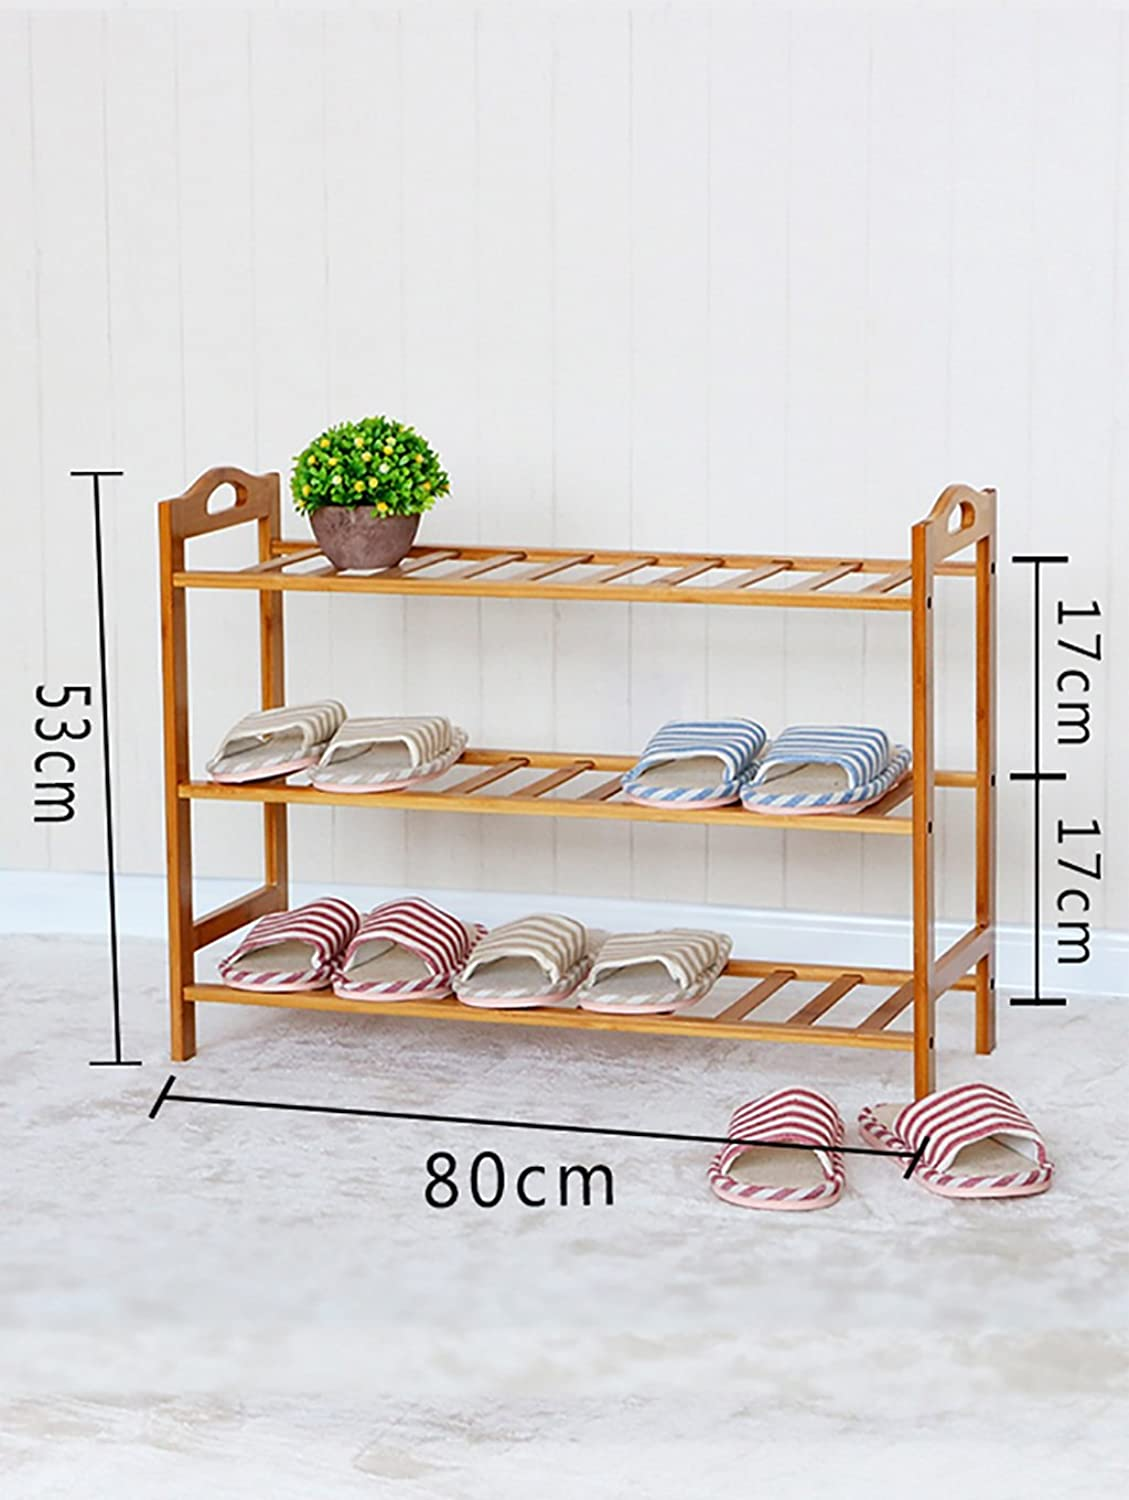 shoes Bench Organizing Rack Nanzhu Small shoes Rack Multi - Storey shoes Cabinet Solid Wood Storage shoes Rack j Simple Modern Assembly Living Room shoes Rack (Size   80cm)